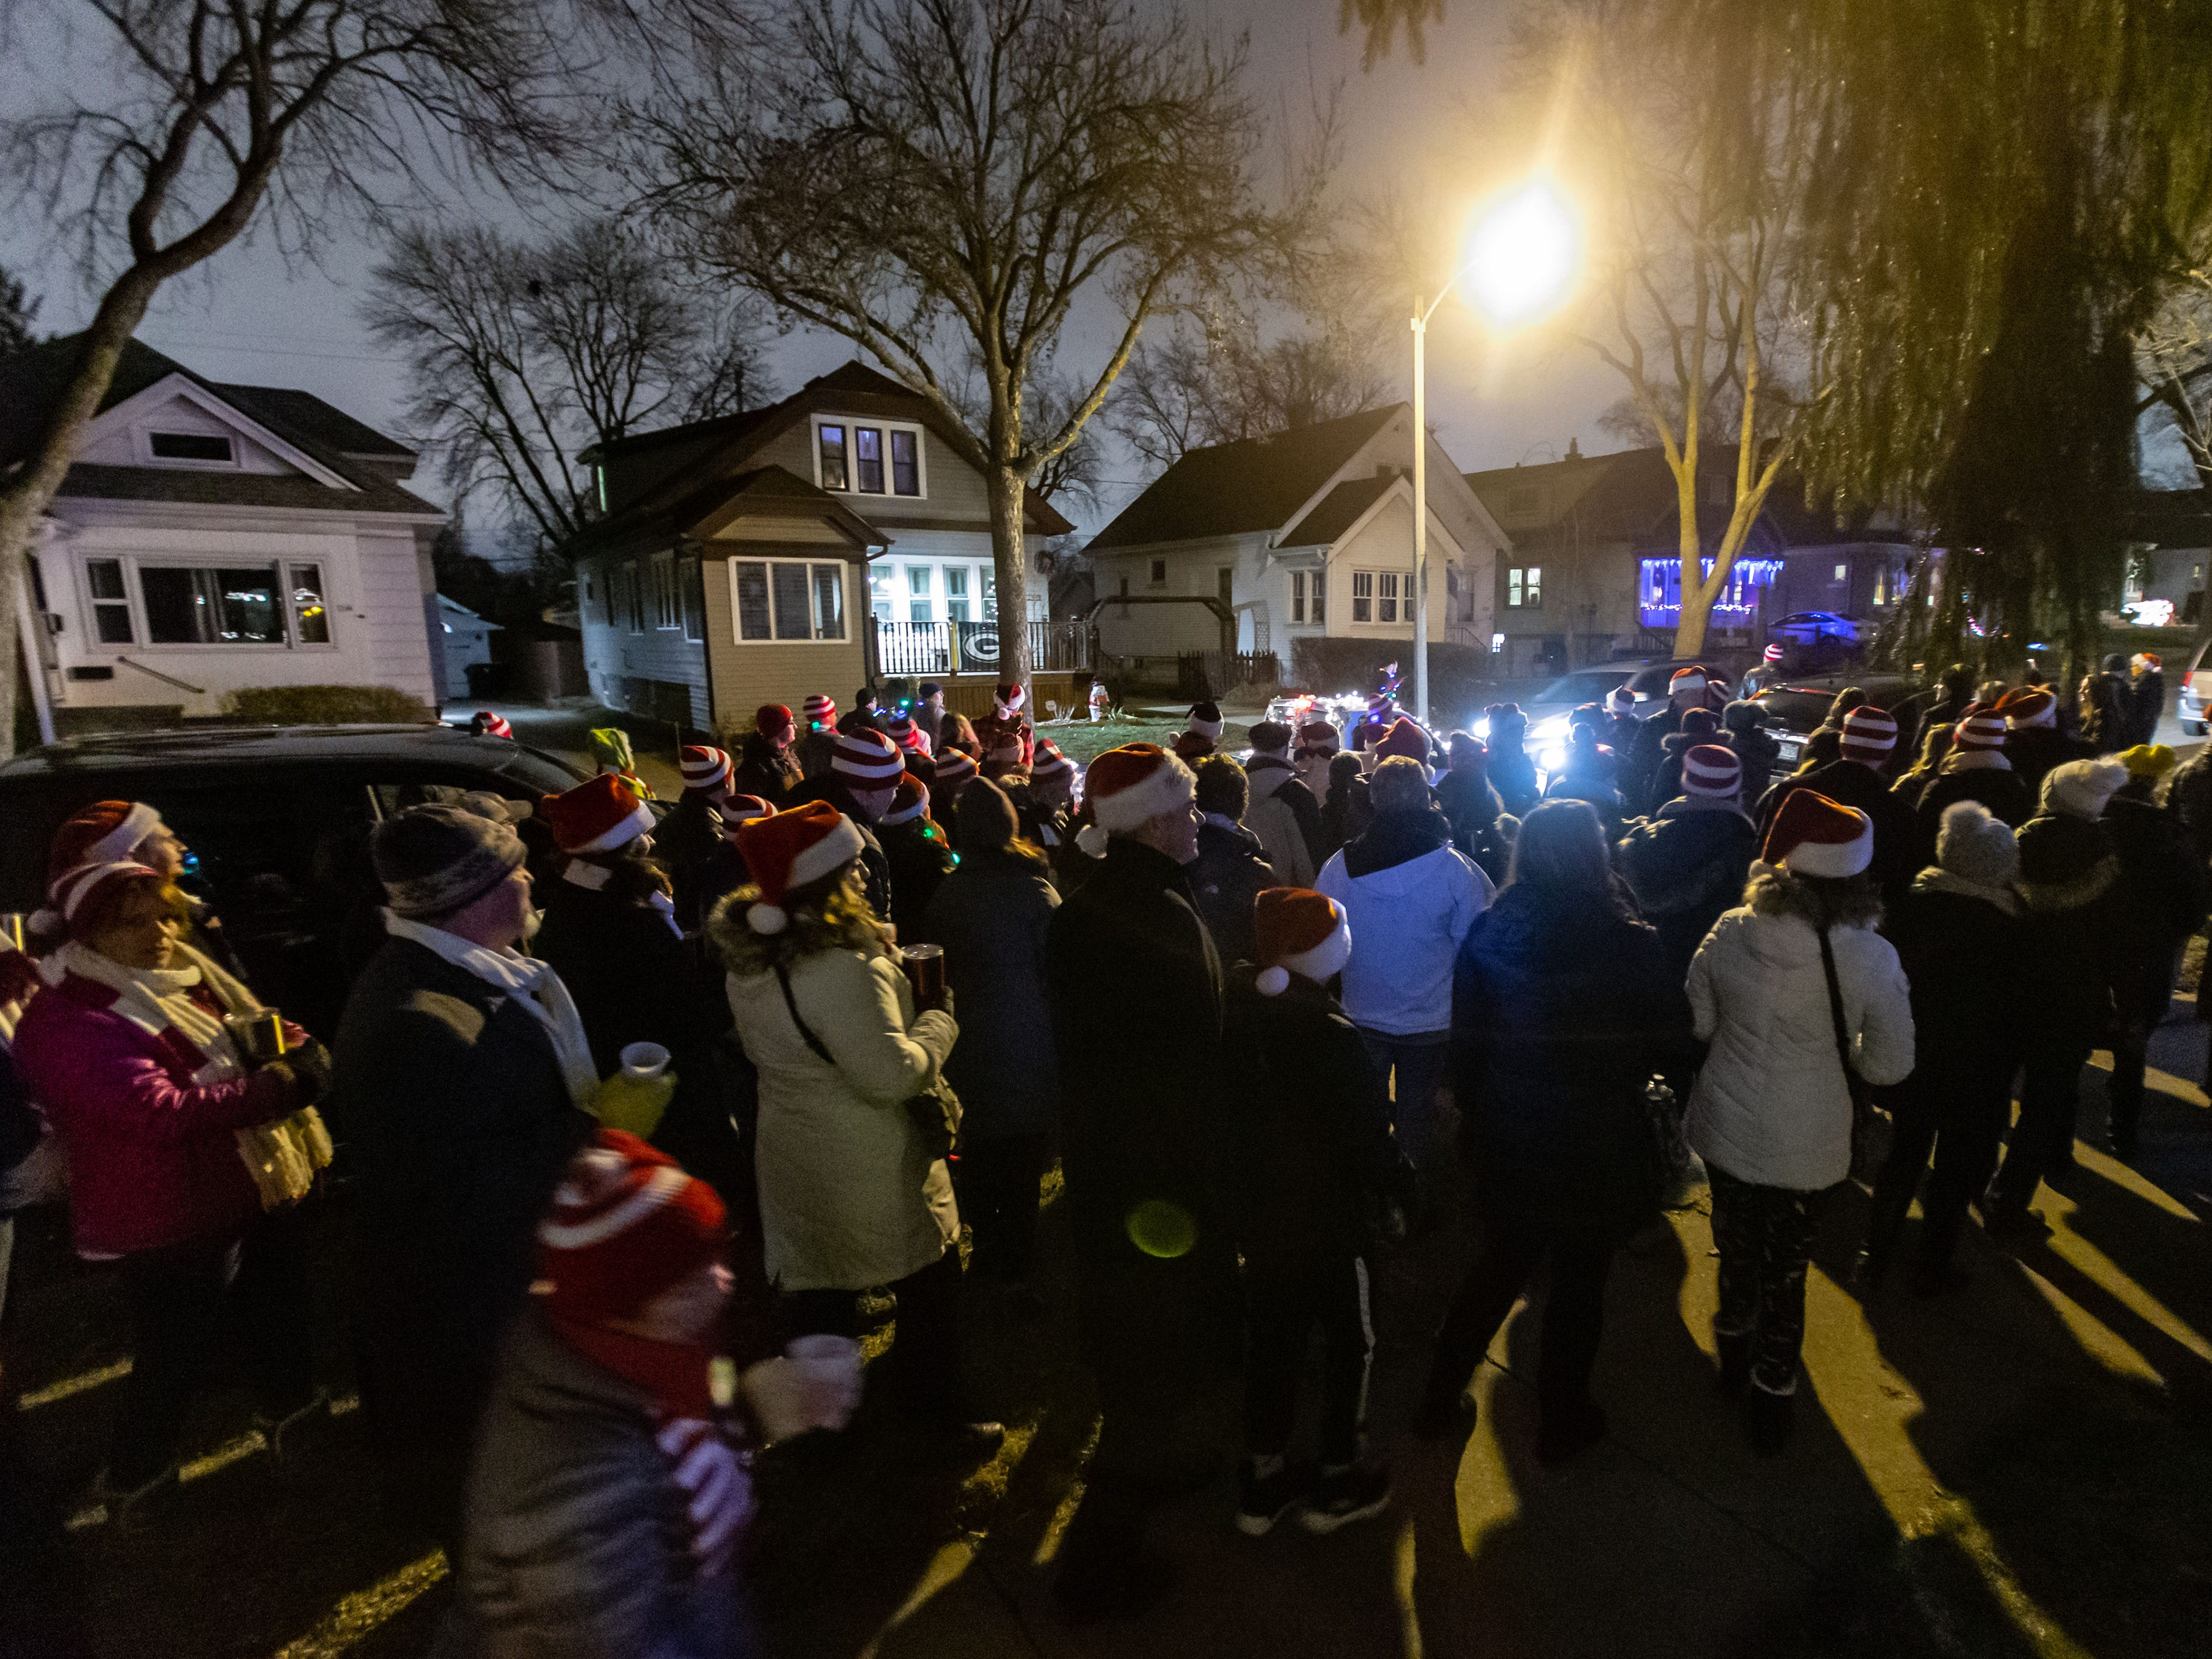 More than one hundred carolers march down 70th St. in Wauwatosa during Tosa's 7th Annual Christmas Caroling Extravaganza on Saturday, Dec. 22, 2018. The objective of the event is to spread holiday cheer and warm the winter night with song and folly.